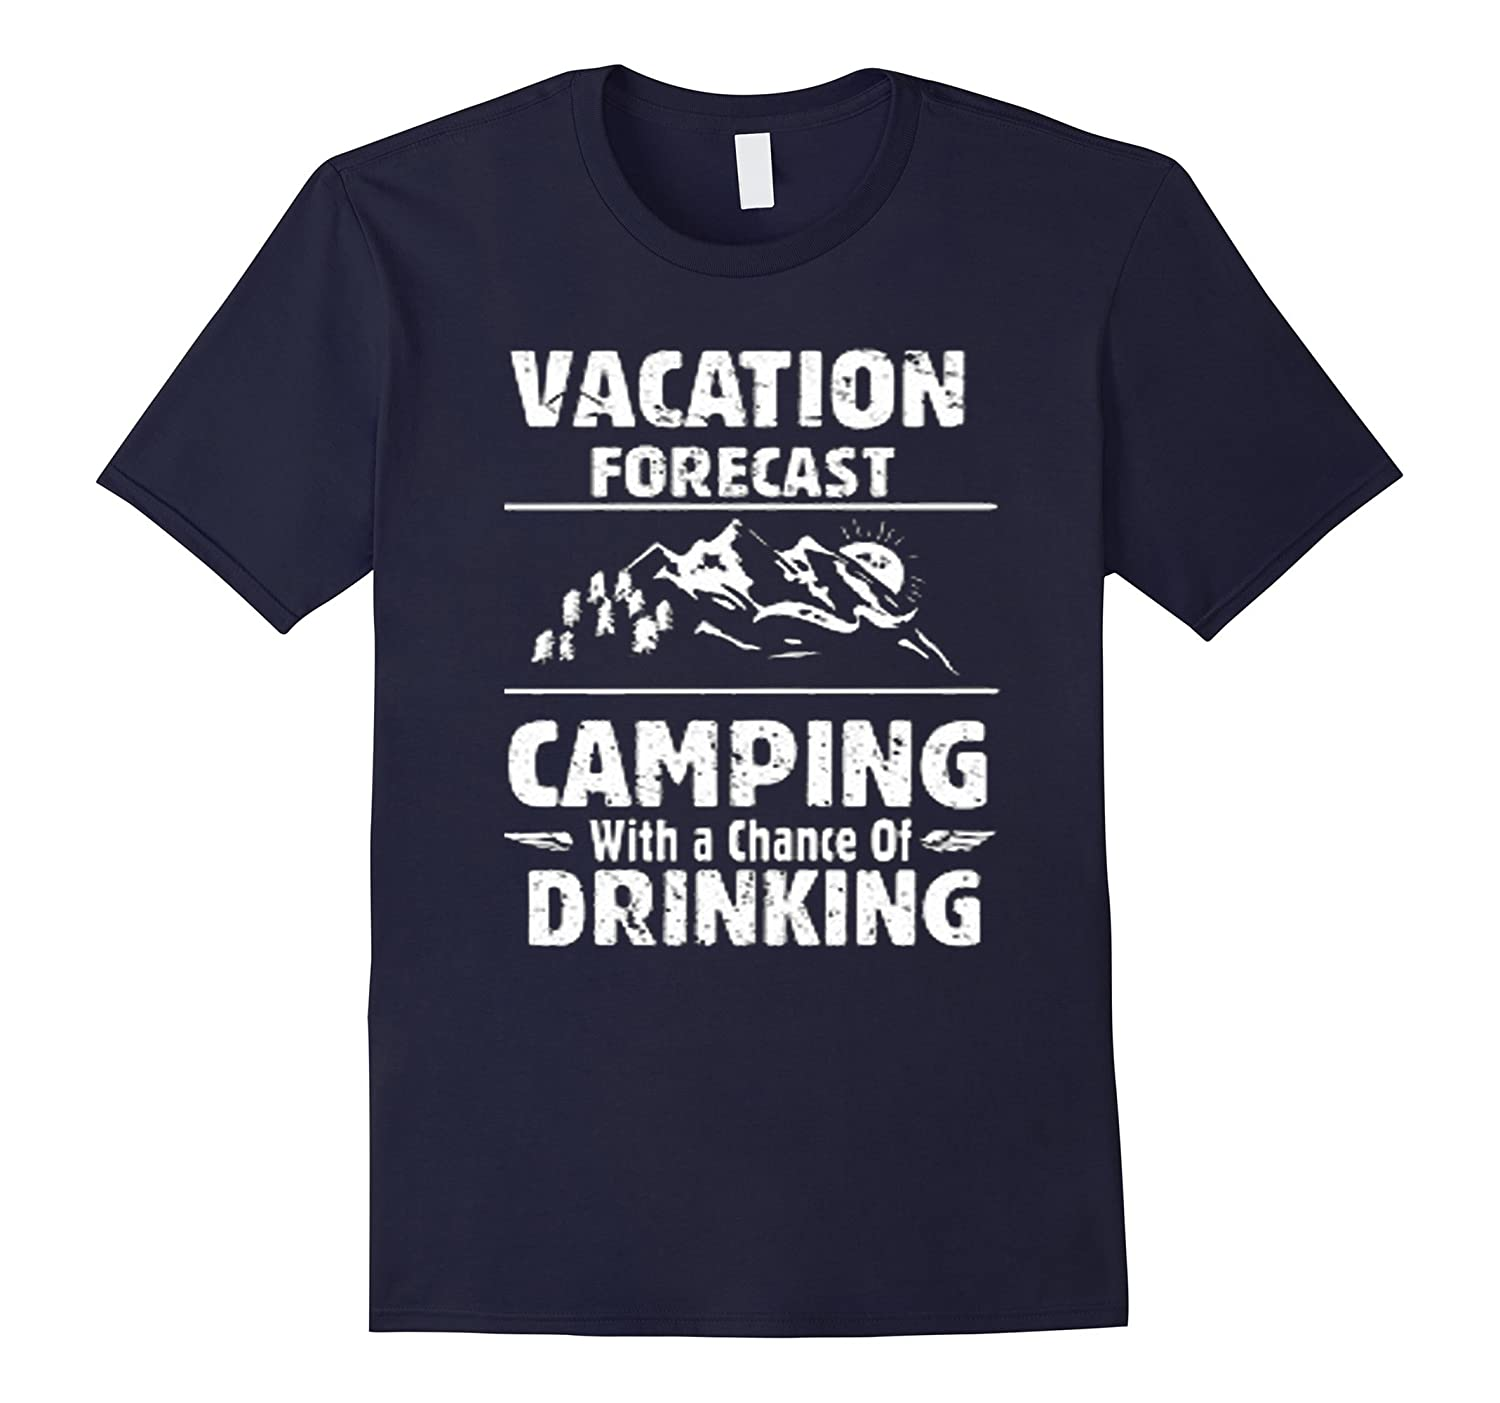 2016 Vacation Tee Forecast Camping A Chance Drinking T-Shirt-azvn